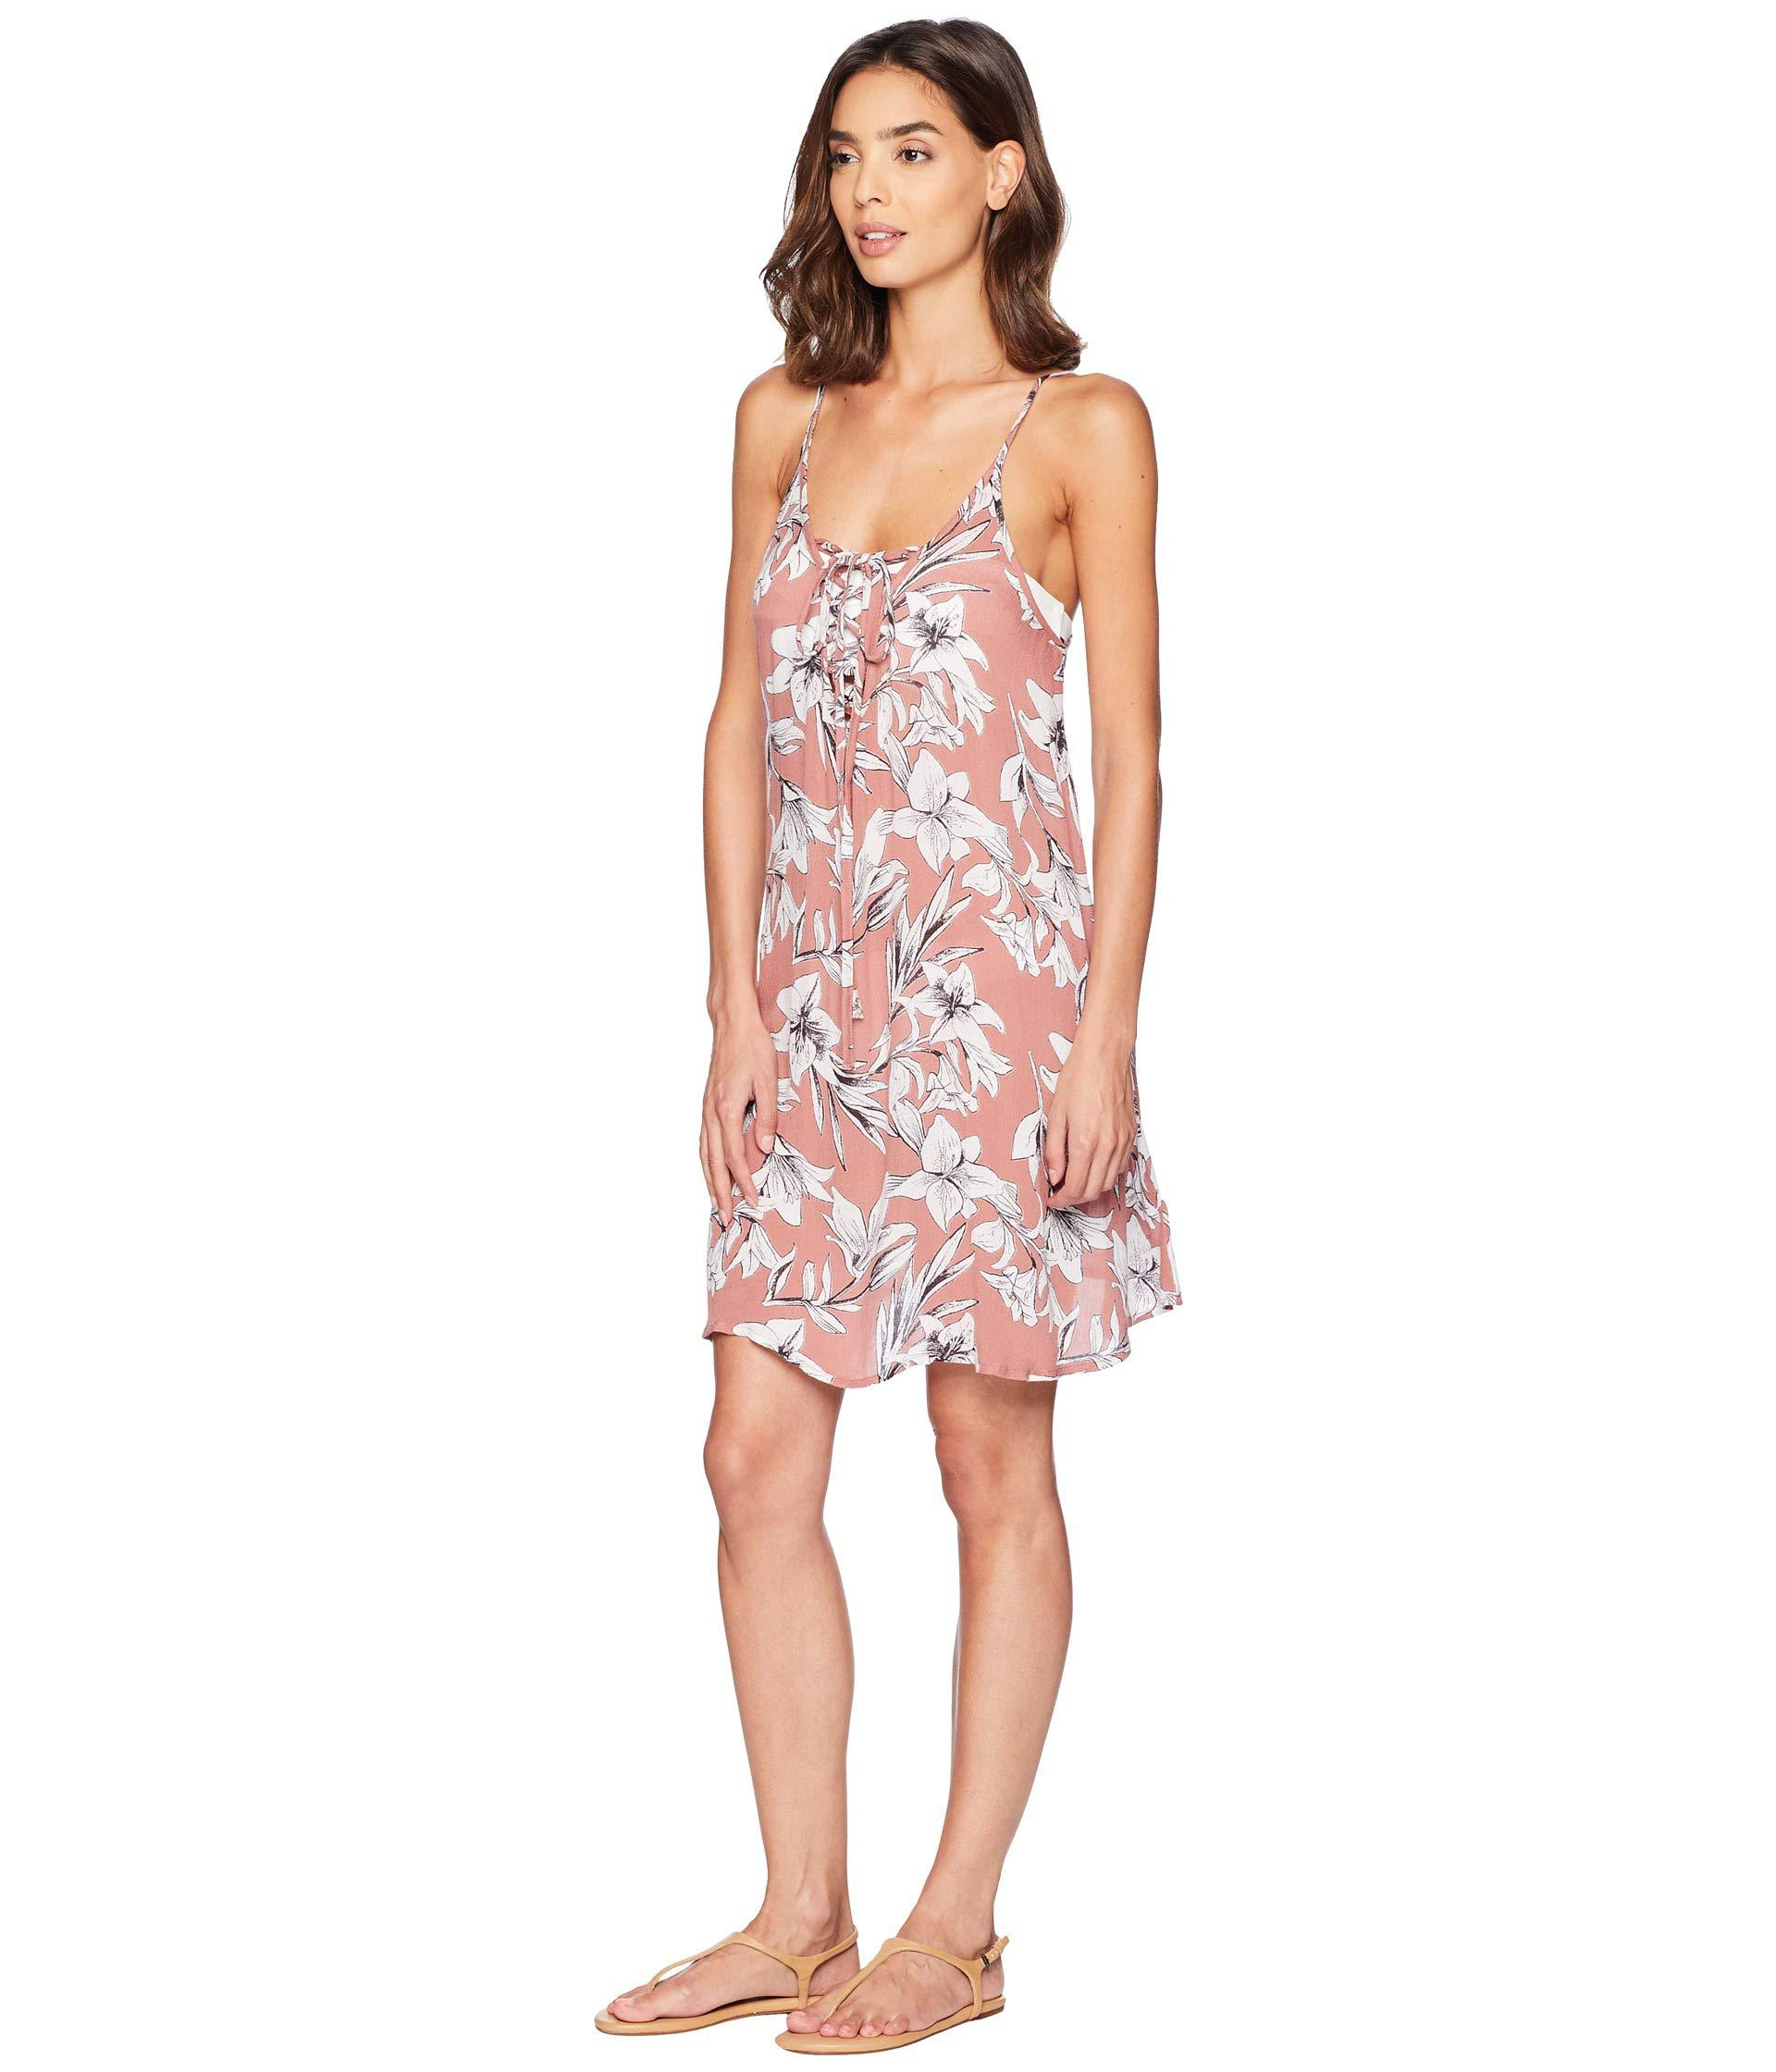 b849121ac0 Lyst - Roxy Softly Love Printed Dress Cover-up in Pink - Save 51%